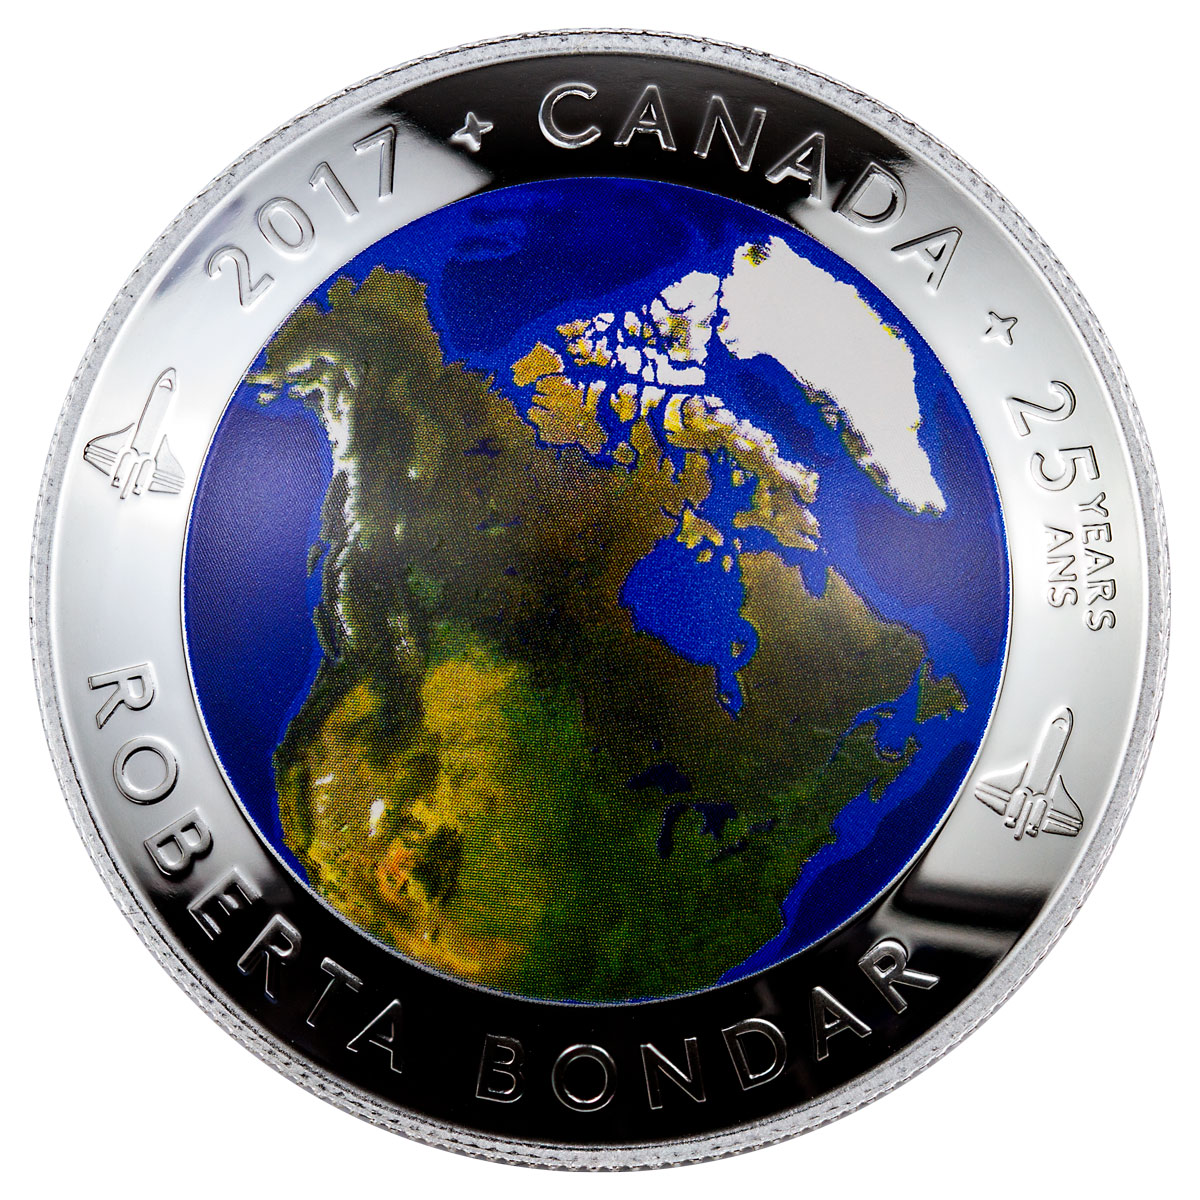 Canada from Space Coin Obverse